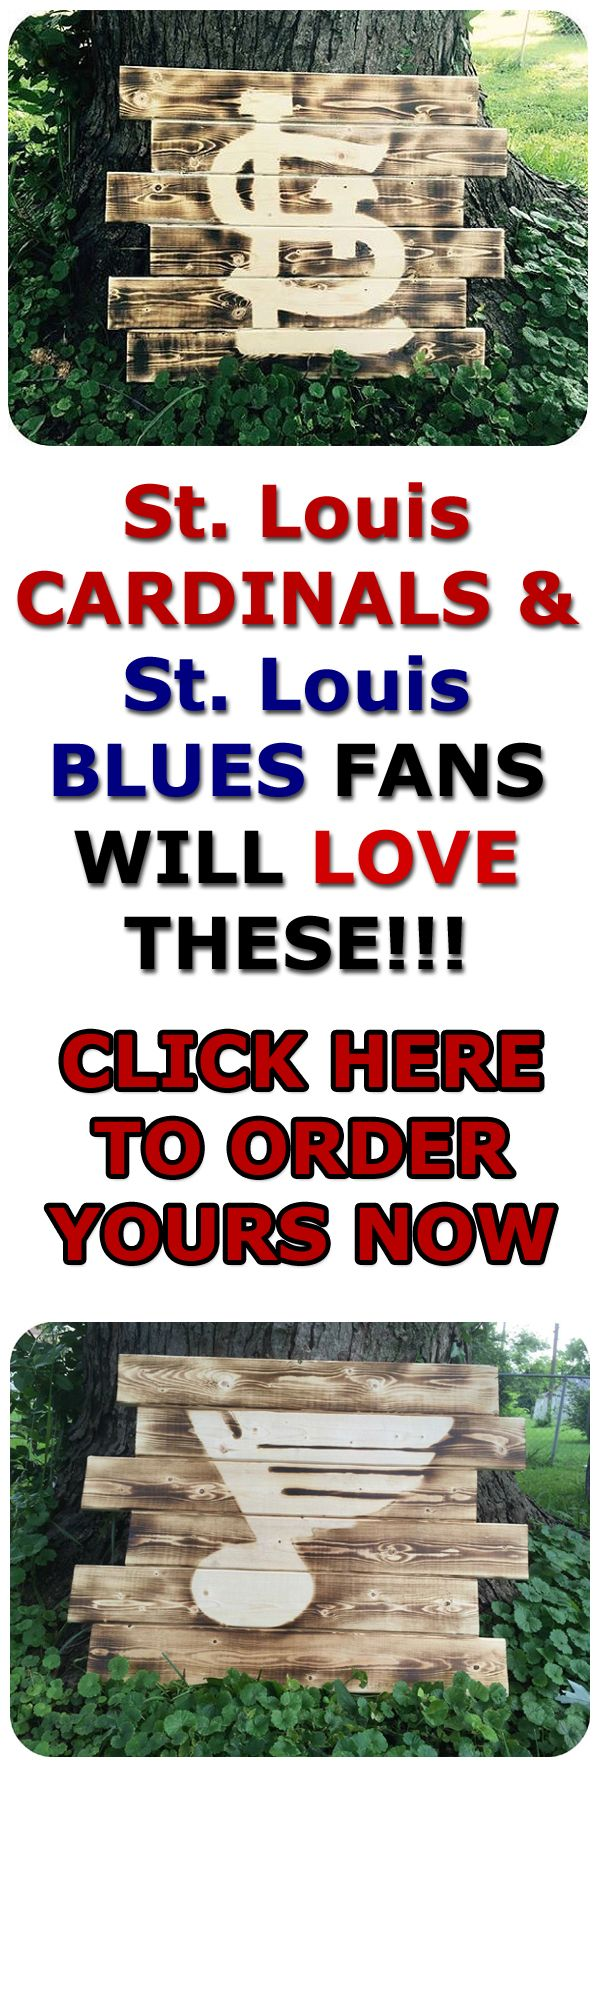 St. Louis Cardinals, Valentines Day, St. Louis Cardinals Wall Art, Cardinals, Wall Art, Wall Decor, Rustic, Baseball, MLB, Man Cave, Cards, St. Louis Blues, NHL, Hockey, St. Louis Blues Wall Art, Blues, St. Louis Blues Wall Decor